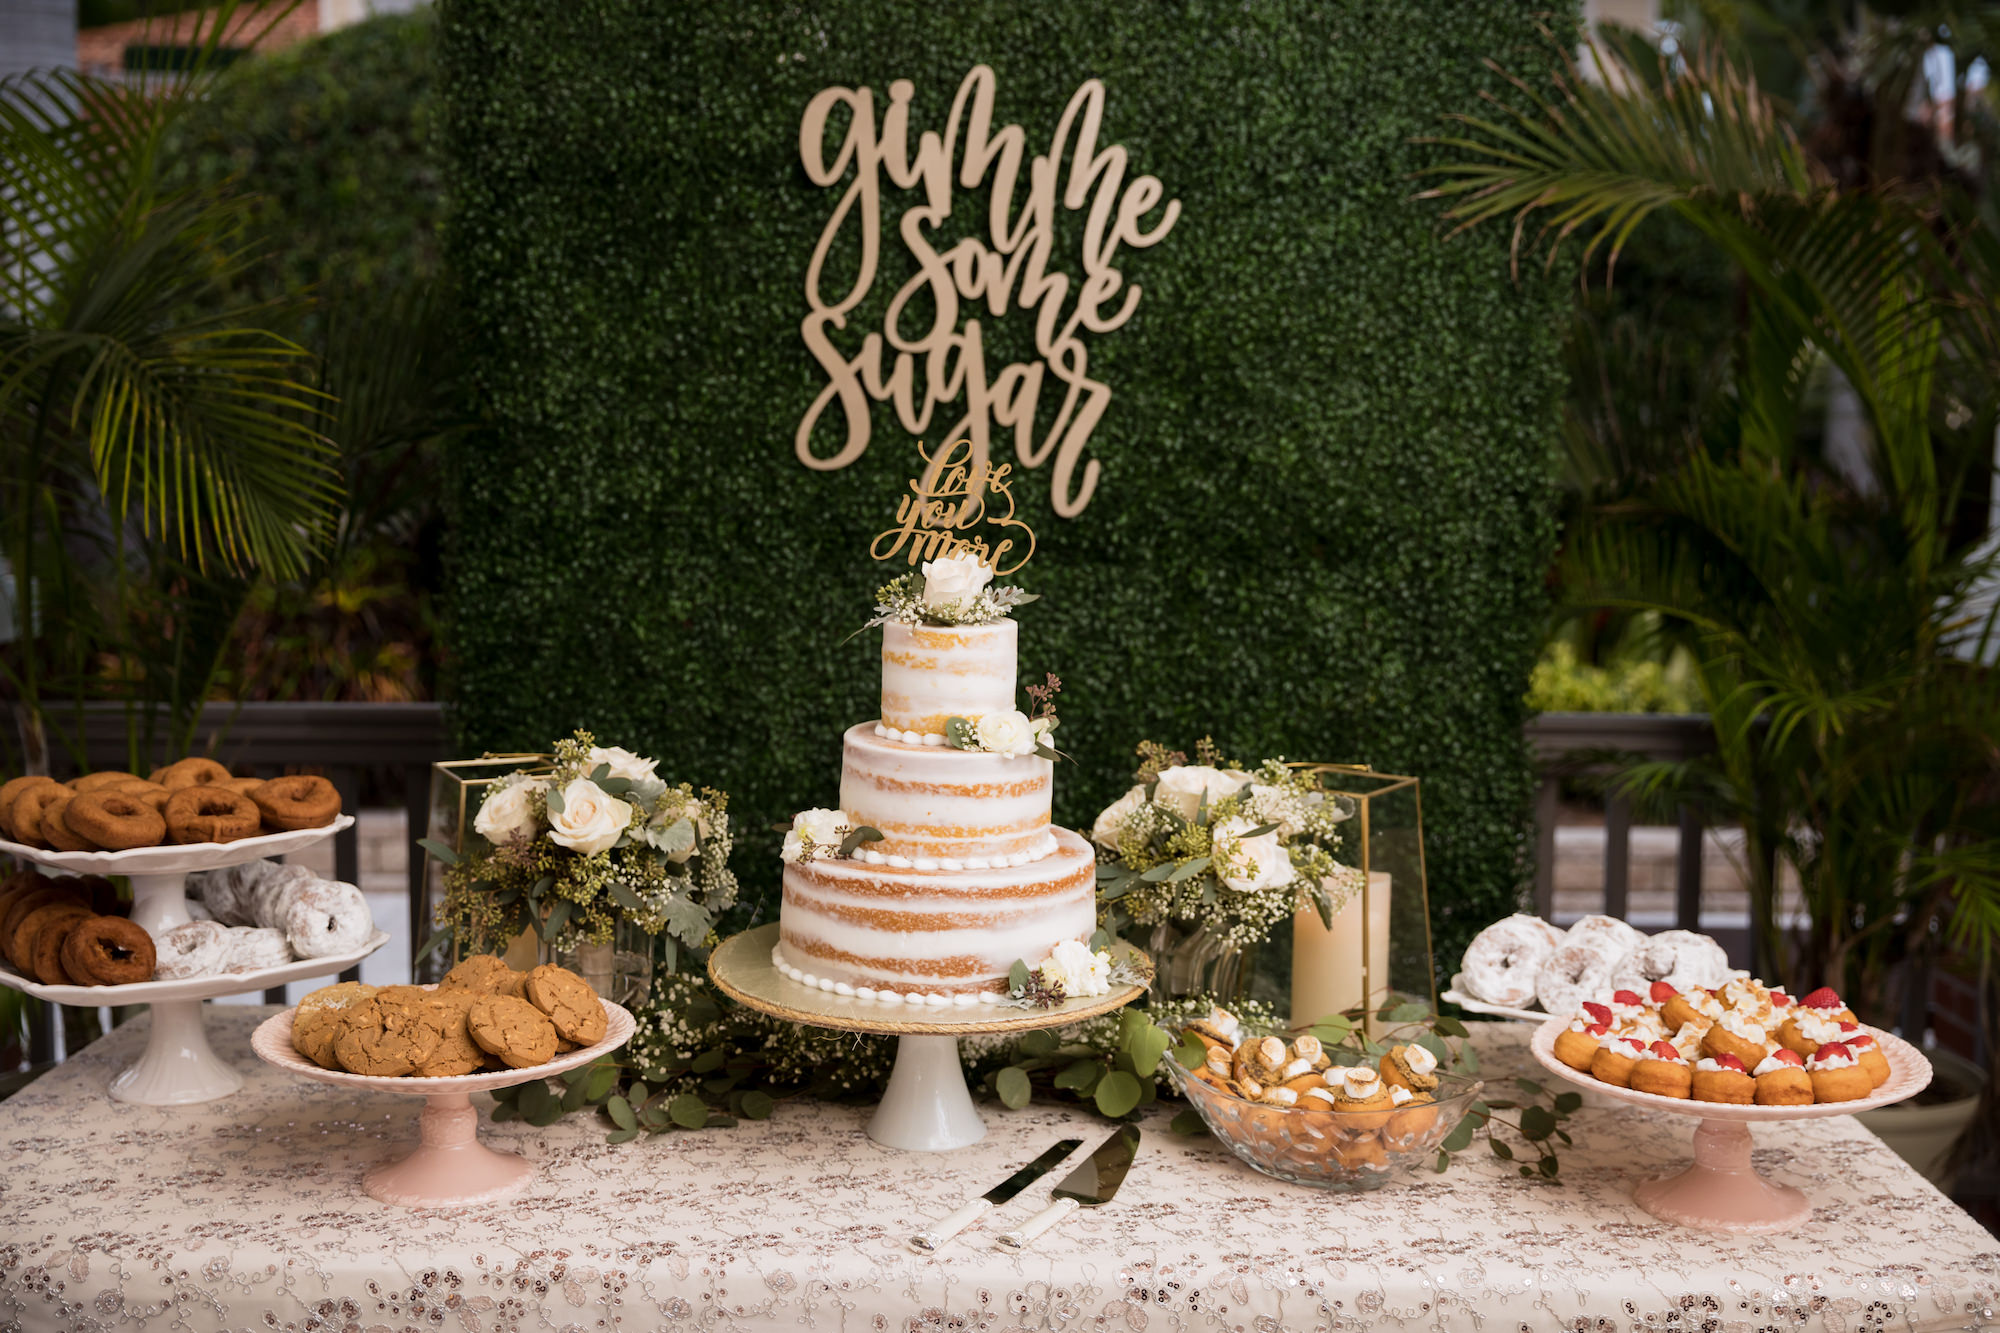 Classic Elegant Wedding Reception Dessert Table, Three Tier Semi Naked Wedding Cake, Donuts, Cookies and Cream Puffs, Ivory Greenery Backdrop with Laser Cut Sign   Tampa Bay Wedding Planner Coastal Coordinating